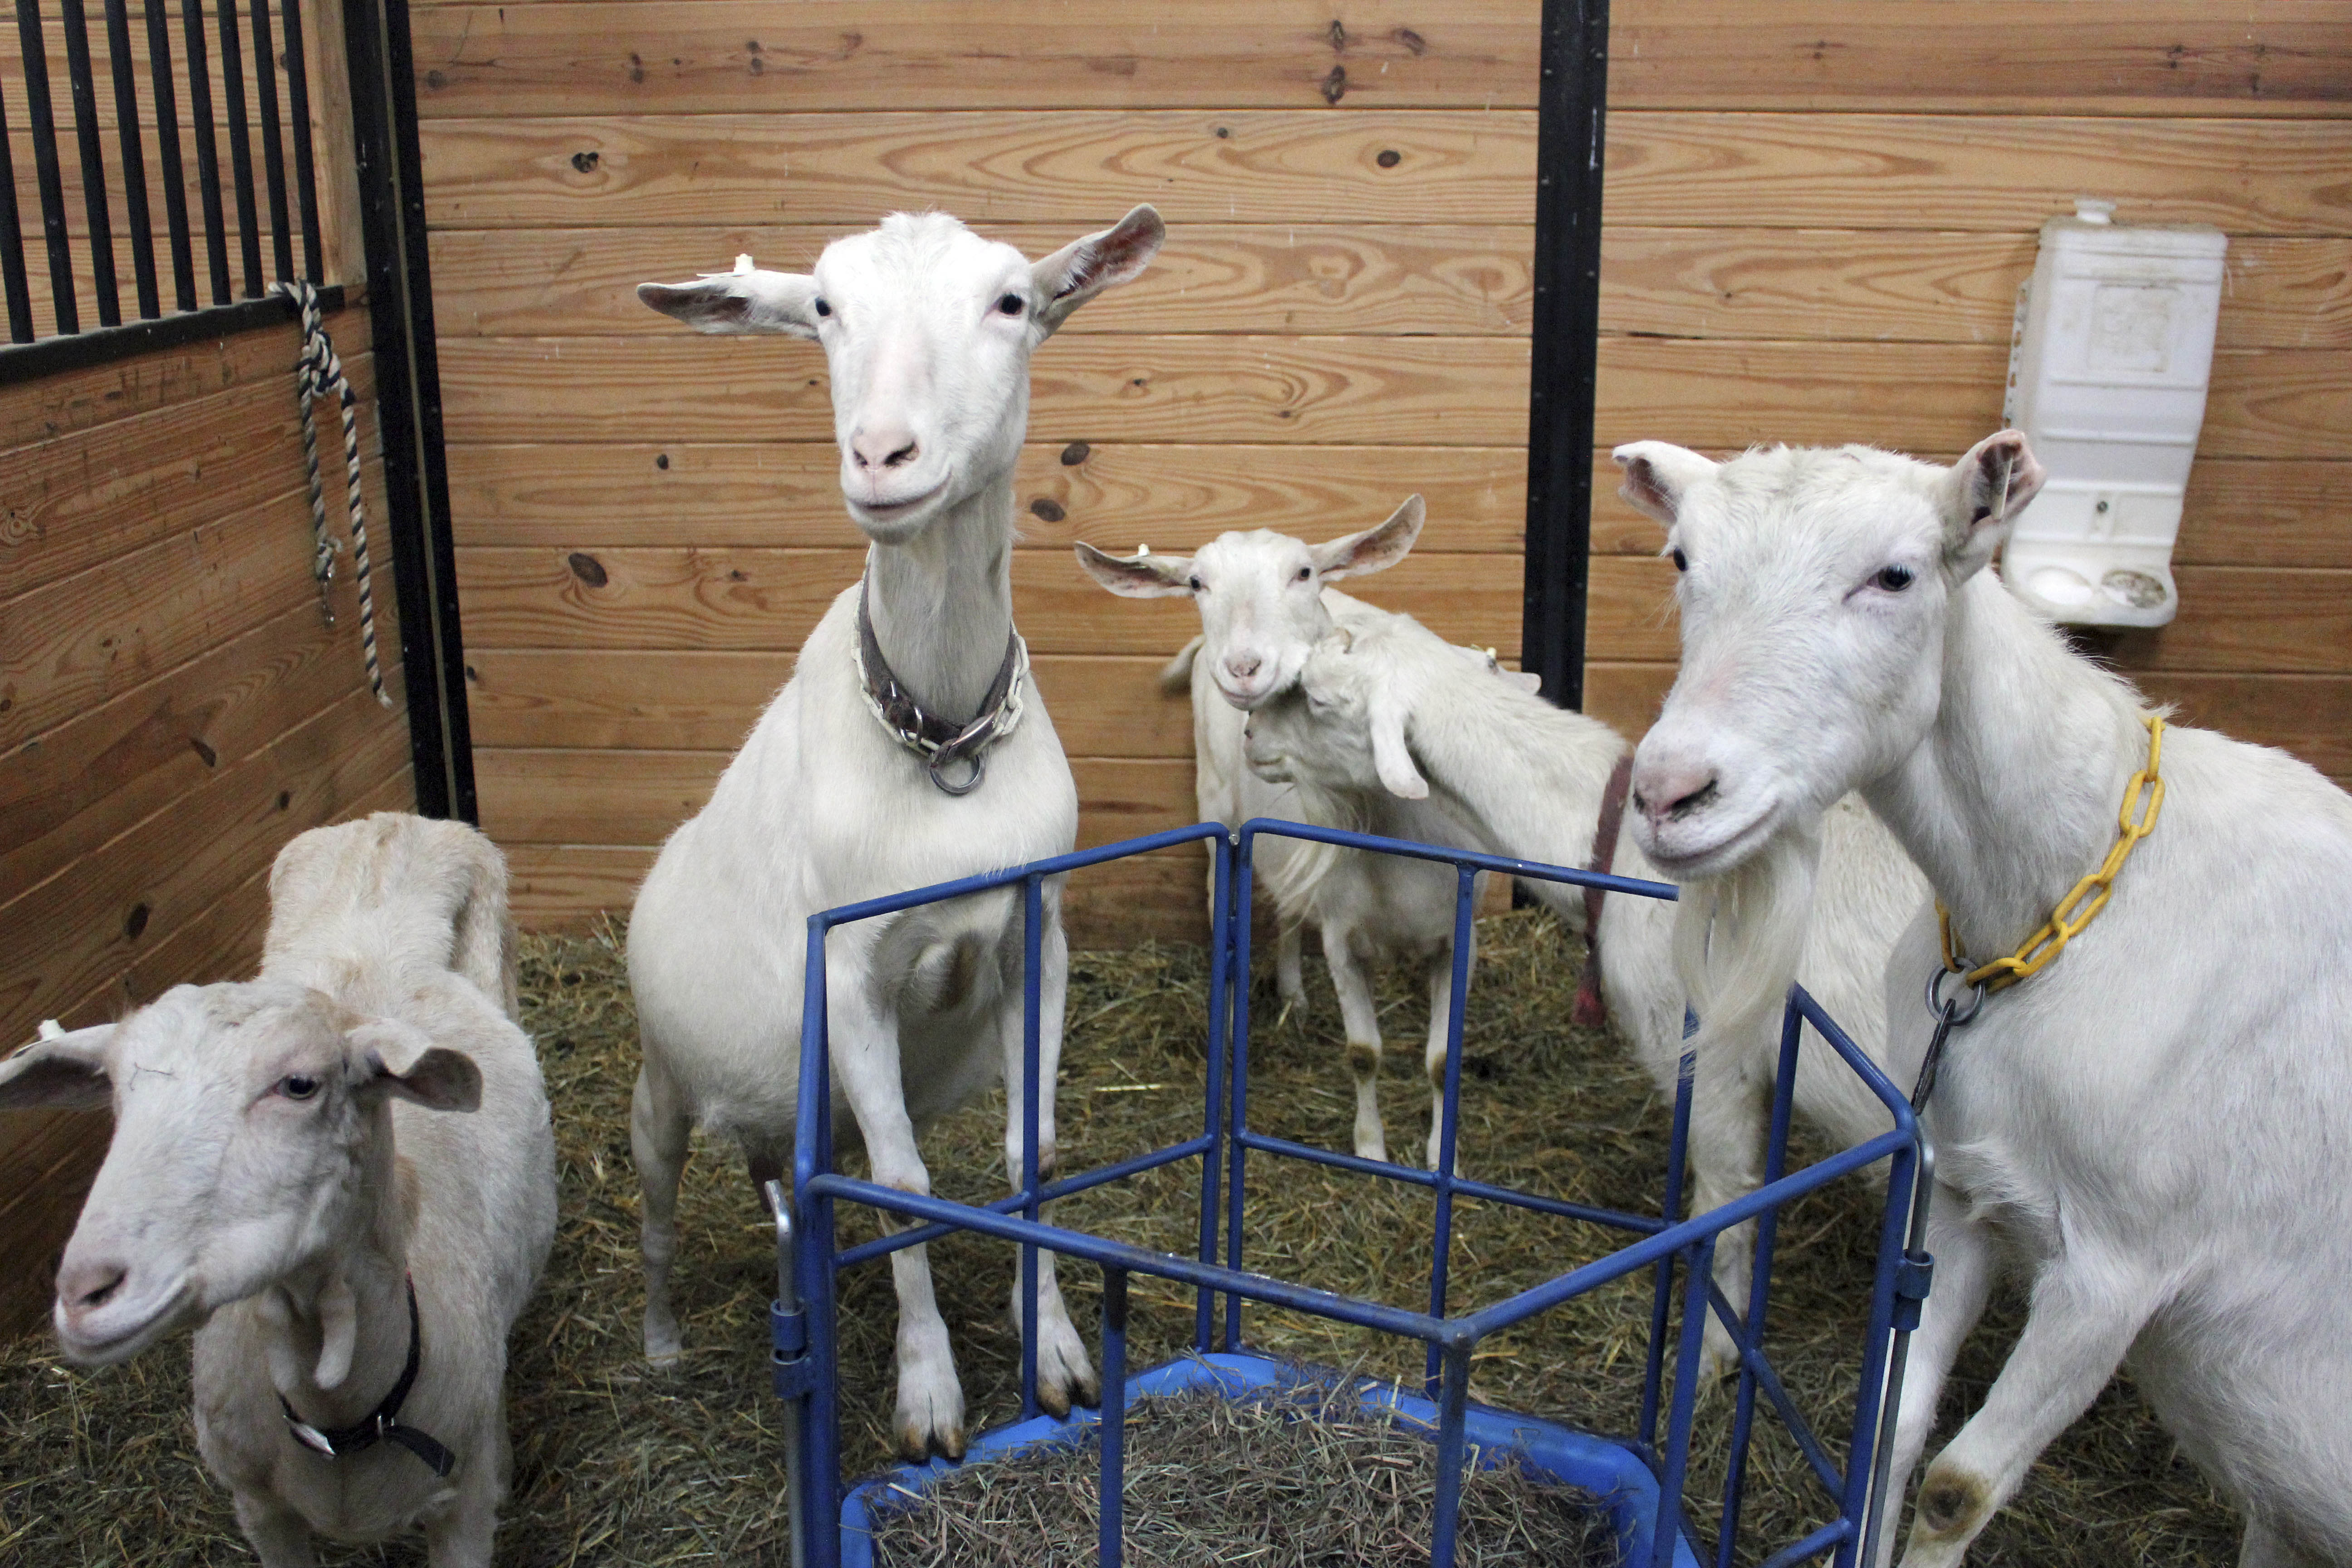 Connecticut urged to consider euthanizing rescued goats